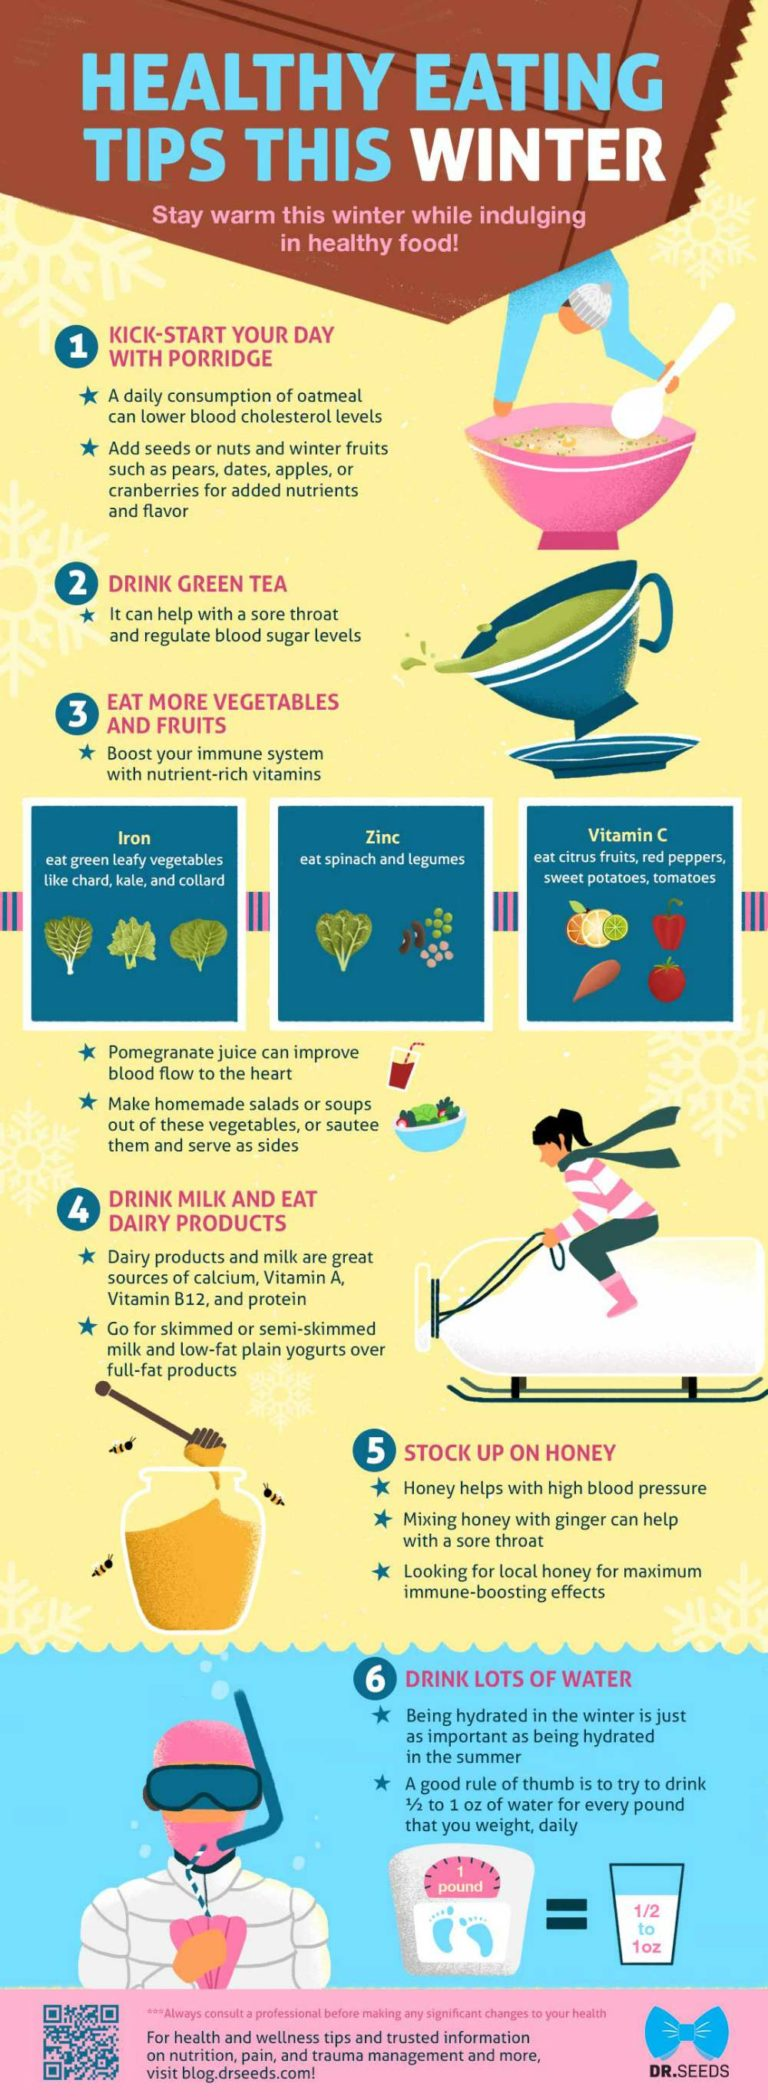 Healthy Eating Tips This Winter #infographic #Health #Winter #Eating Tips